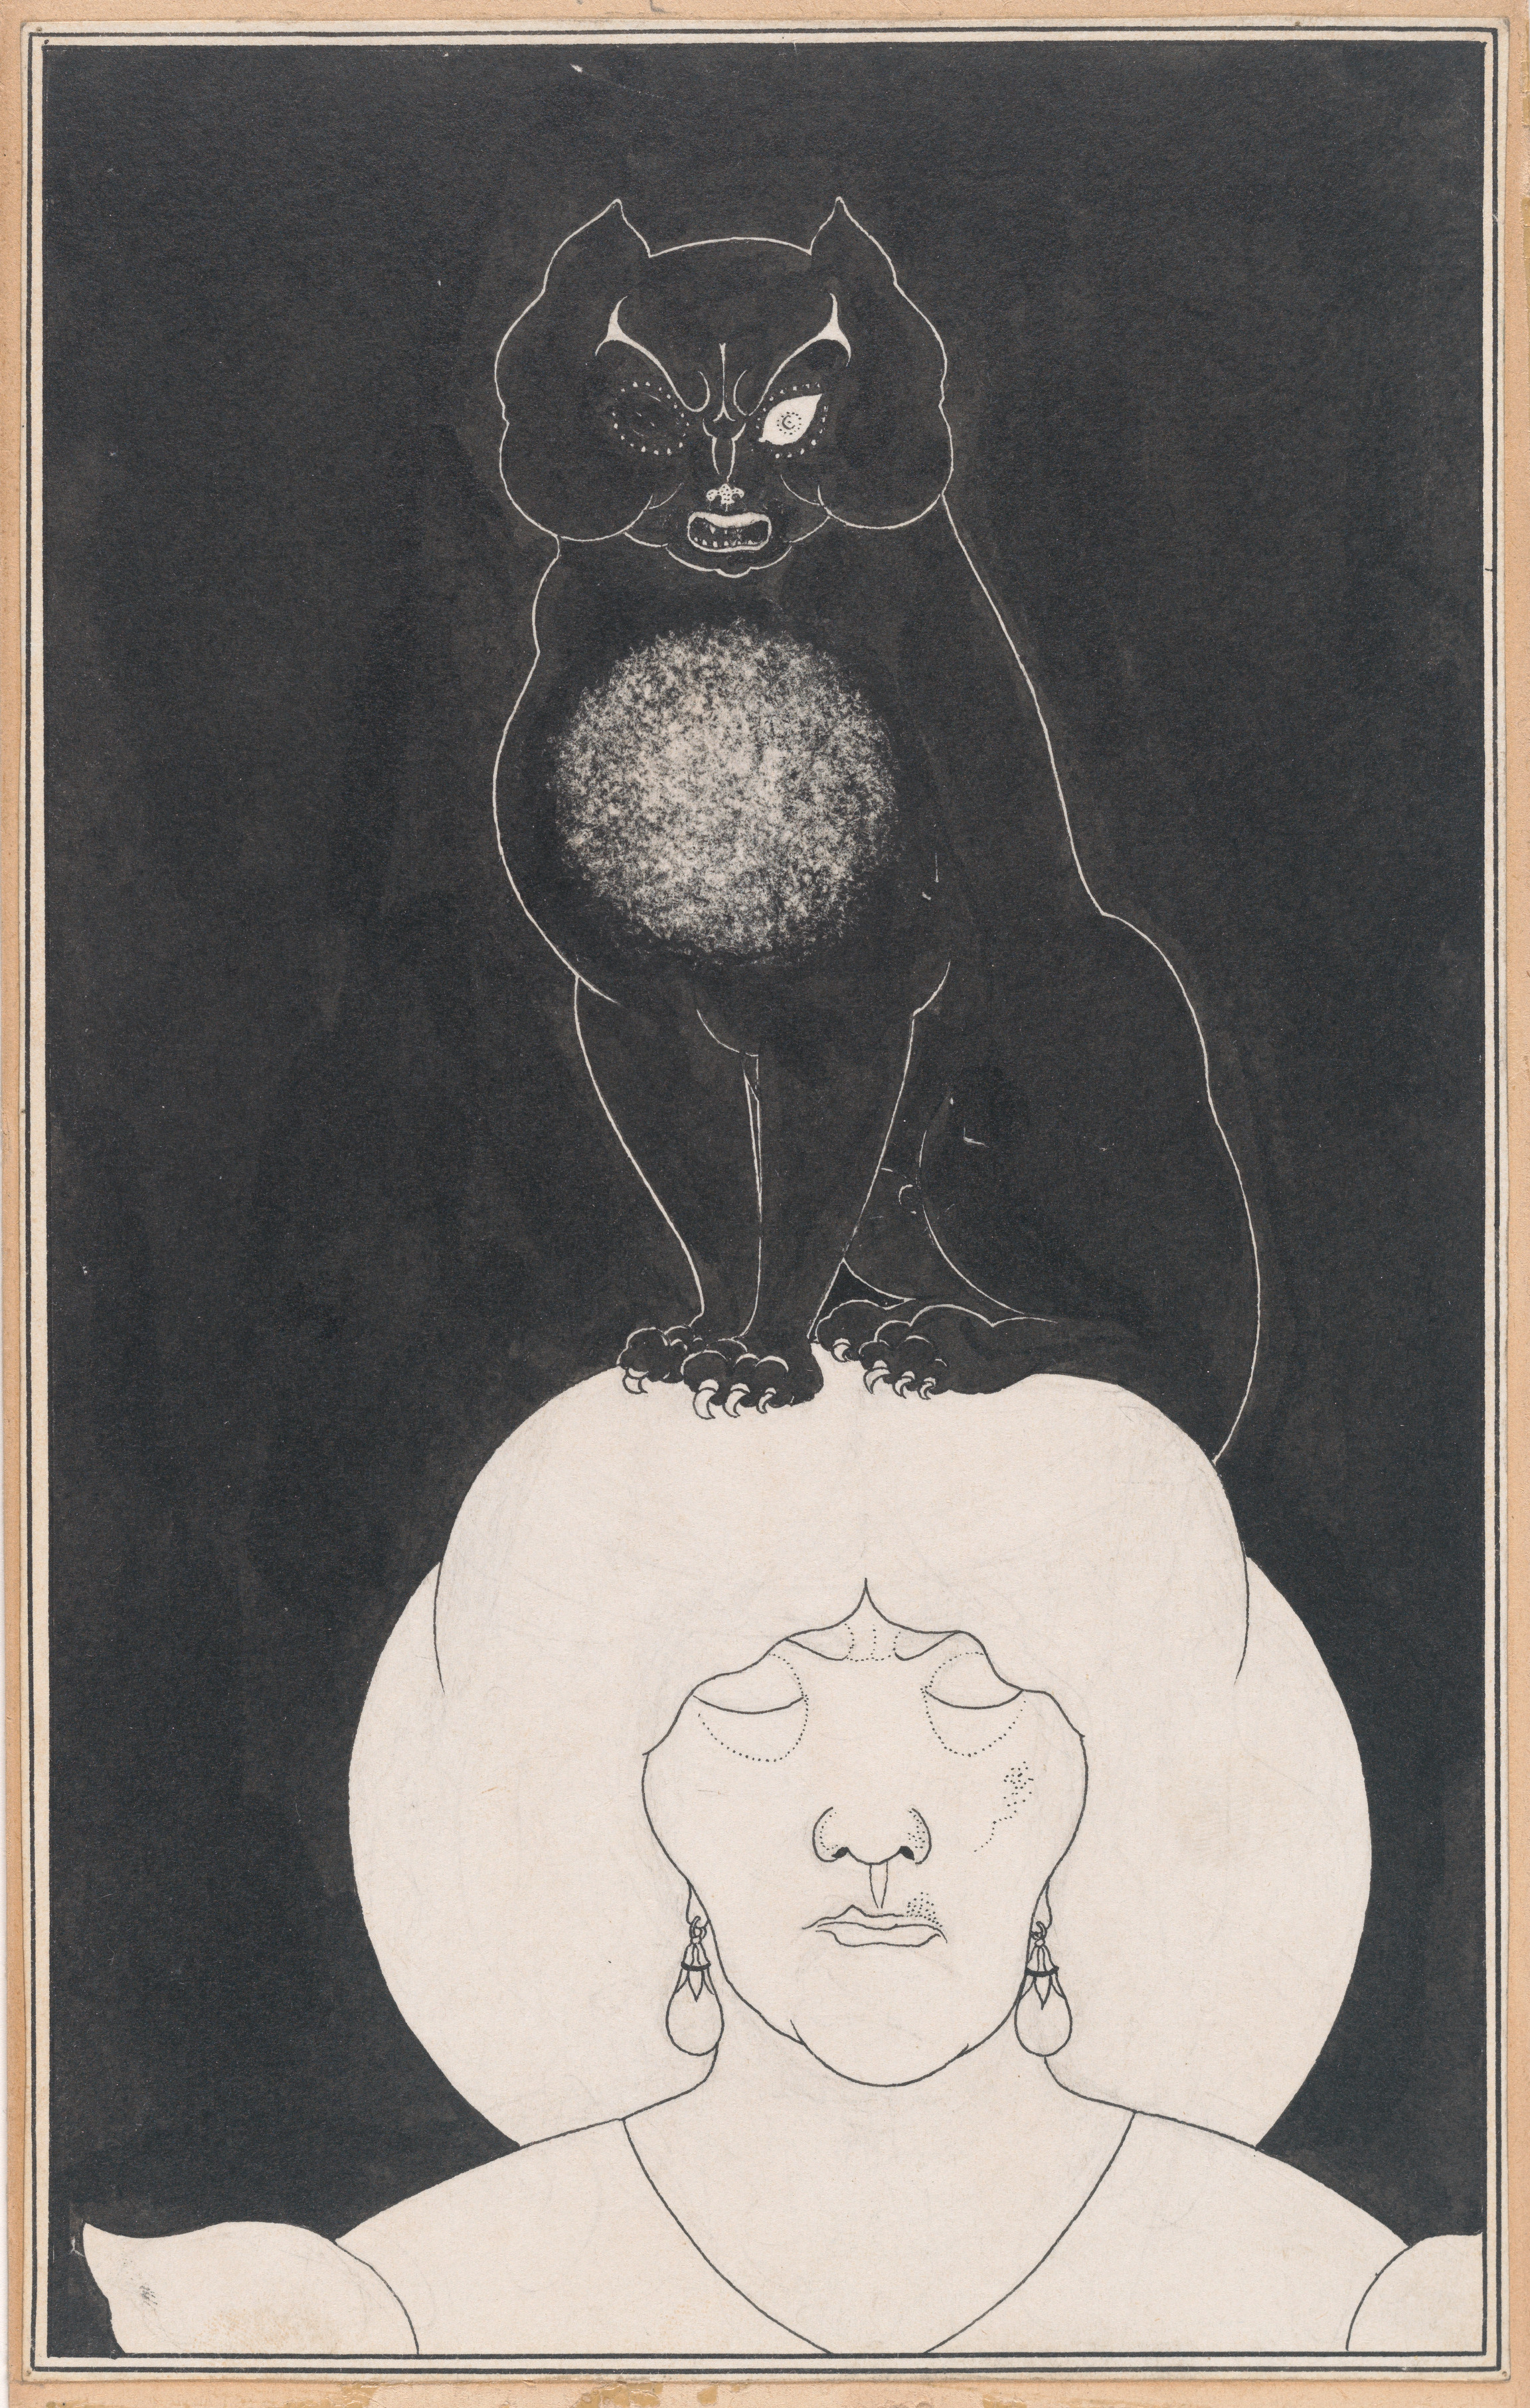 """Aubrey Beardsley's ilustration of the black cat, for Edgar Allan Poe's """"tales of mystery and the imagination""""."""